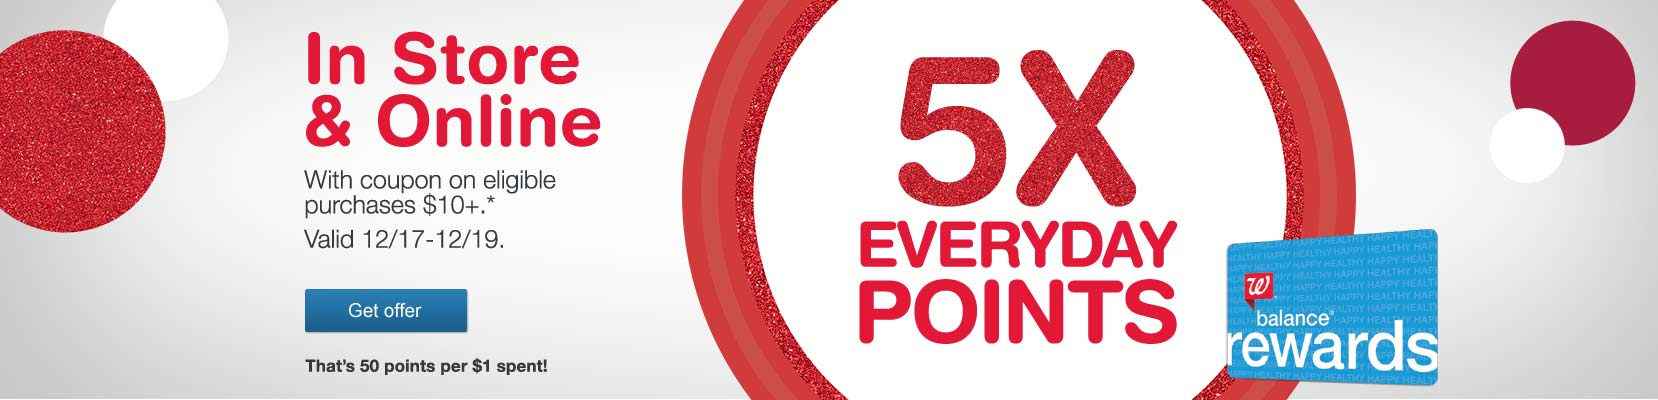 5X Everyday Points In Store & Online with coupon on eligible purchases $10+.* Valid 12/17-12/19. That's 50 points per $1 spent! Balance(R) Rewards. Get offer.